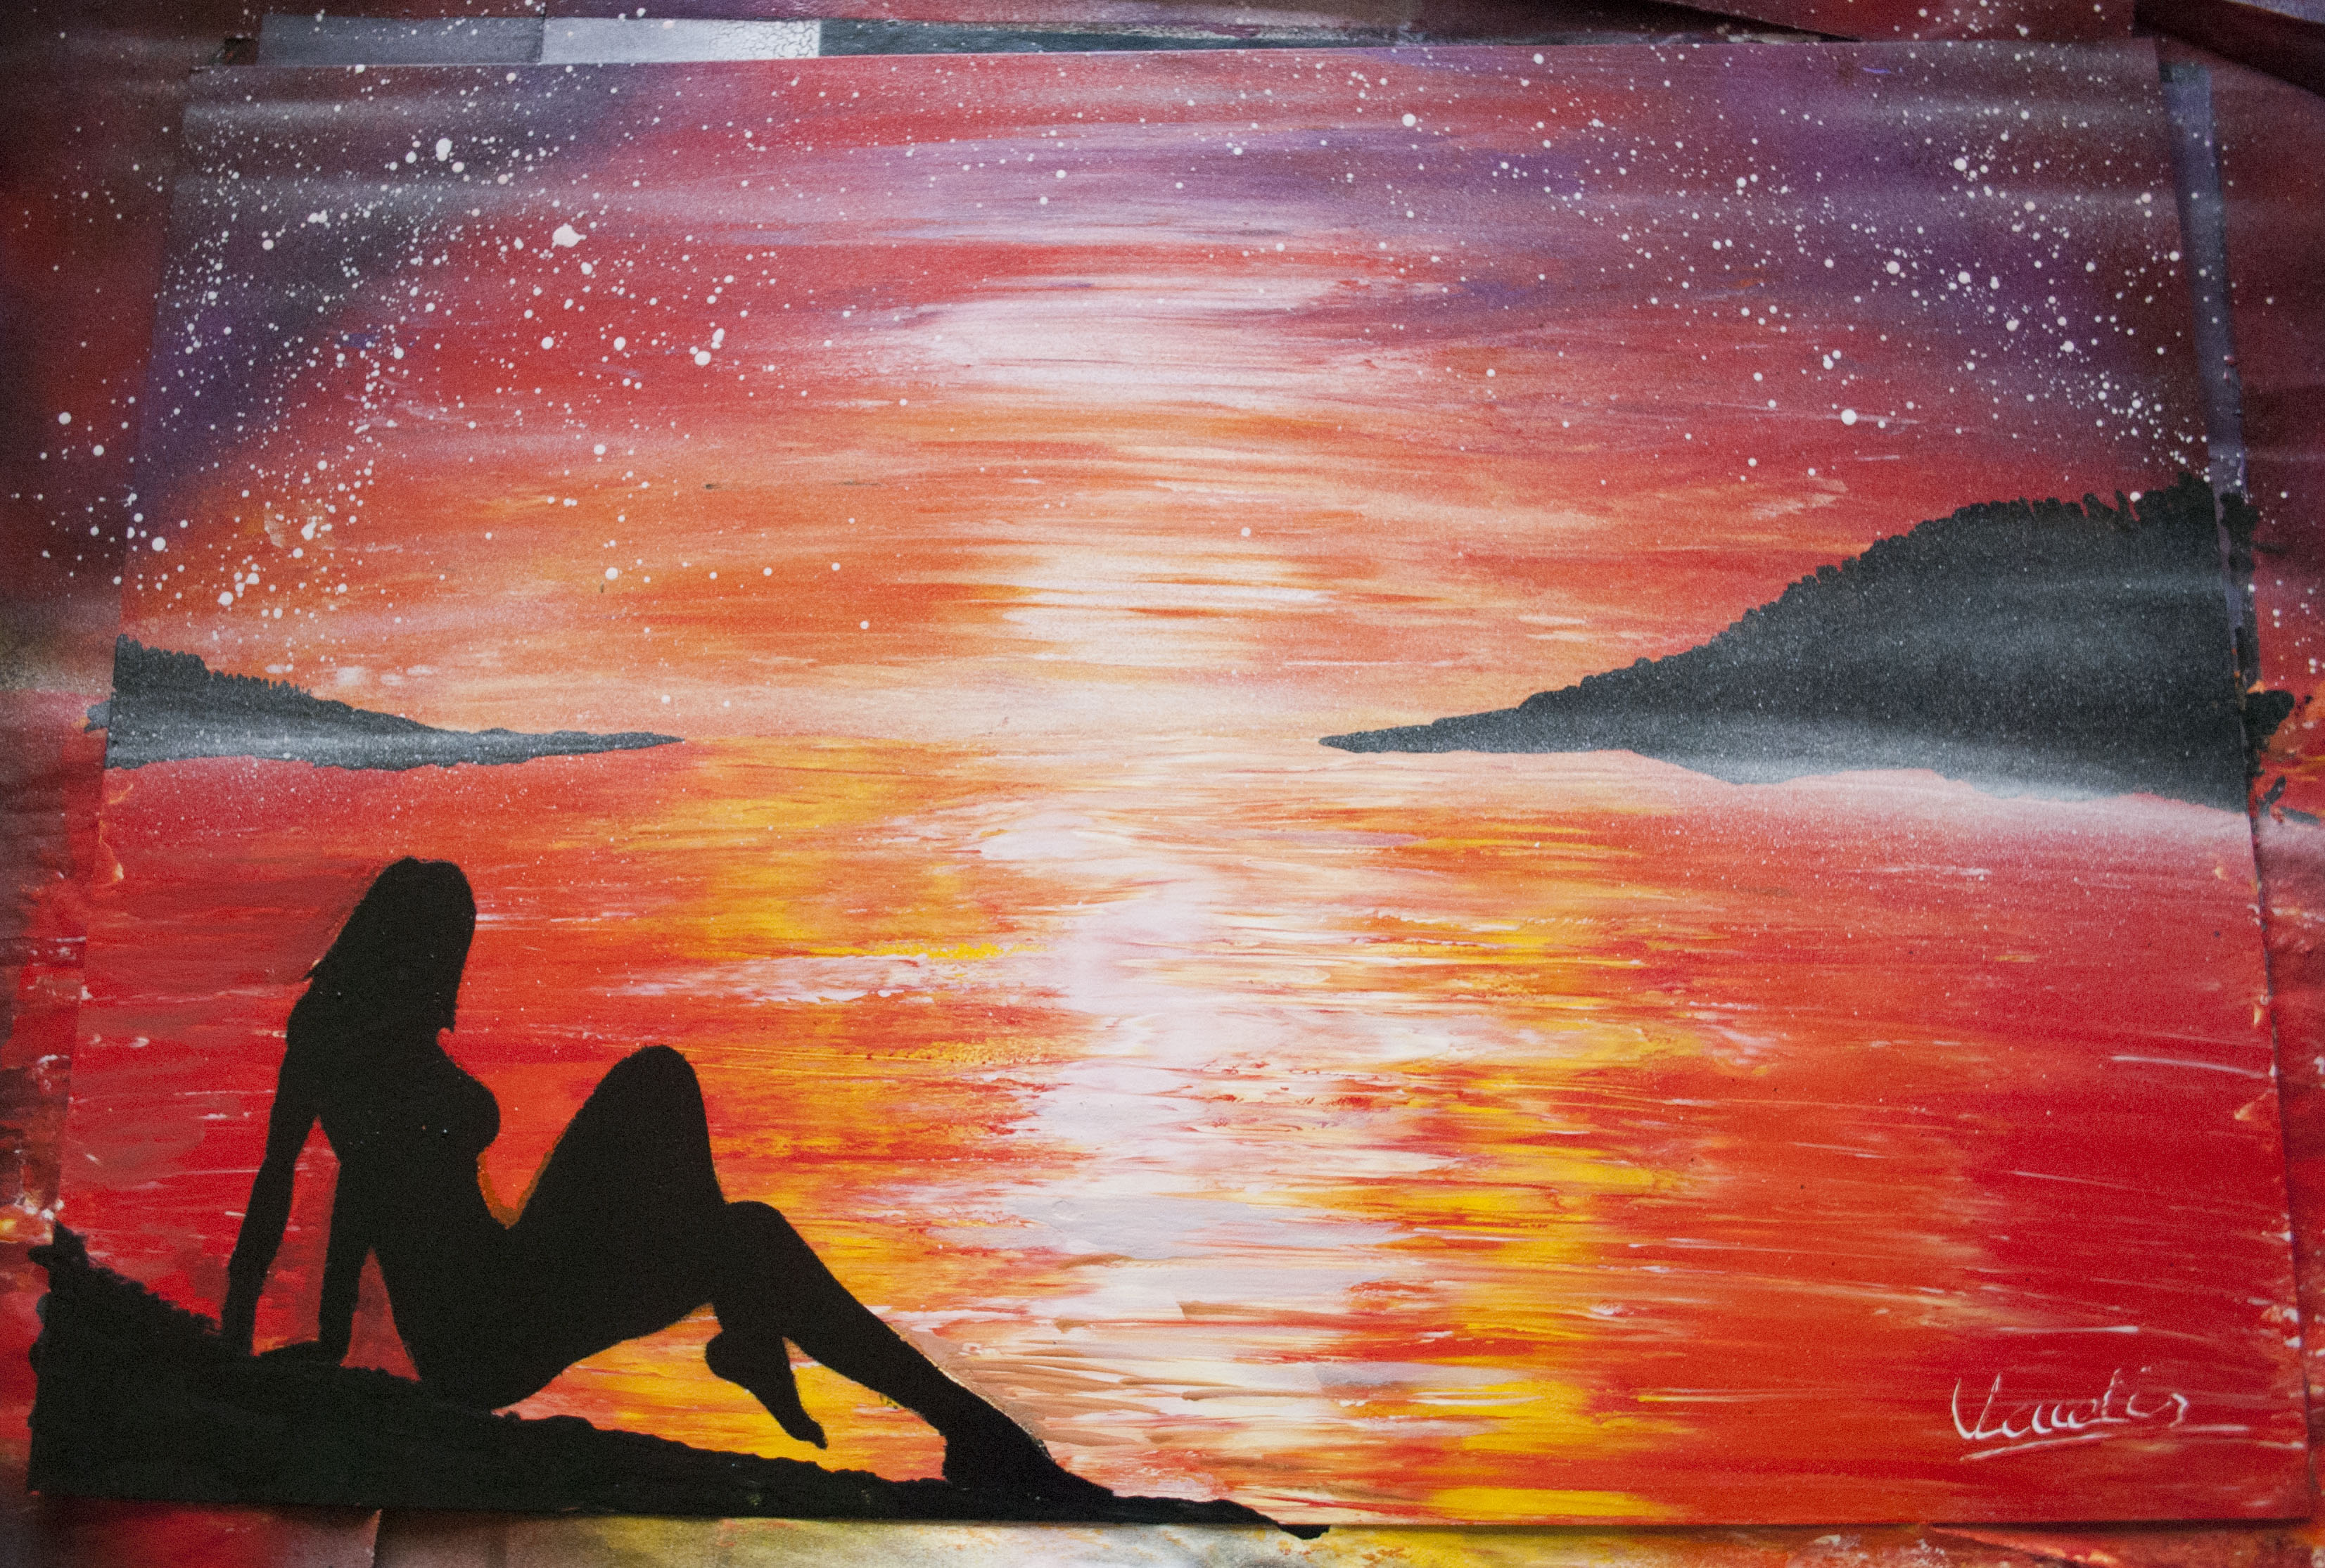 Sunset Beach spray paint art by Ucuetis